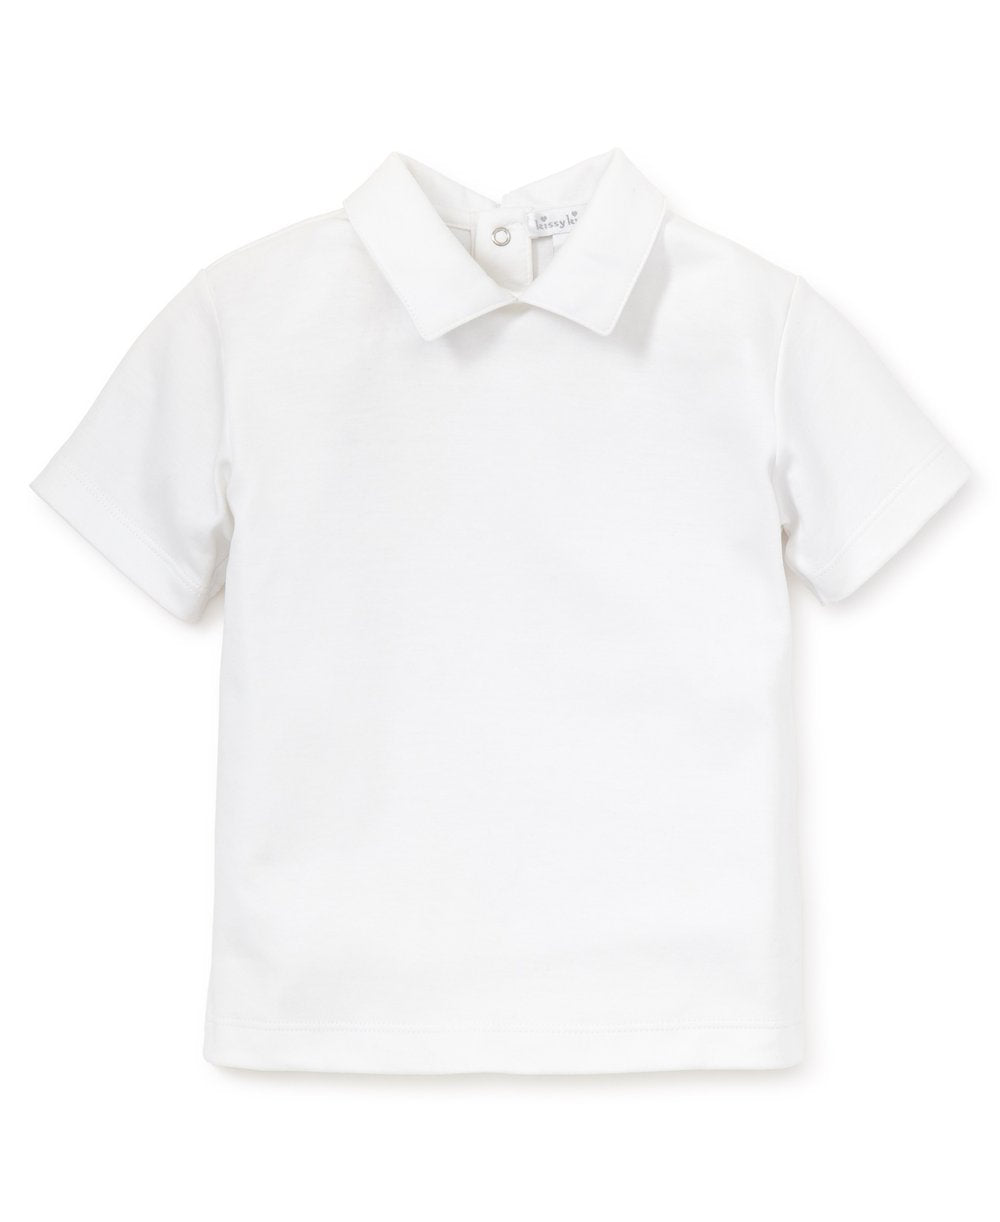 White S/S Toddler Boys Collar Tee - Posh Tots Children's Boutique